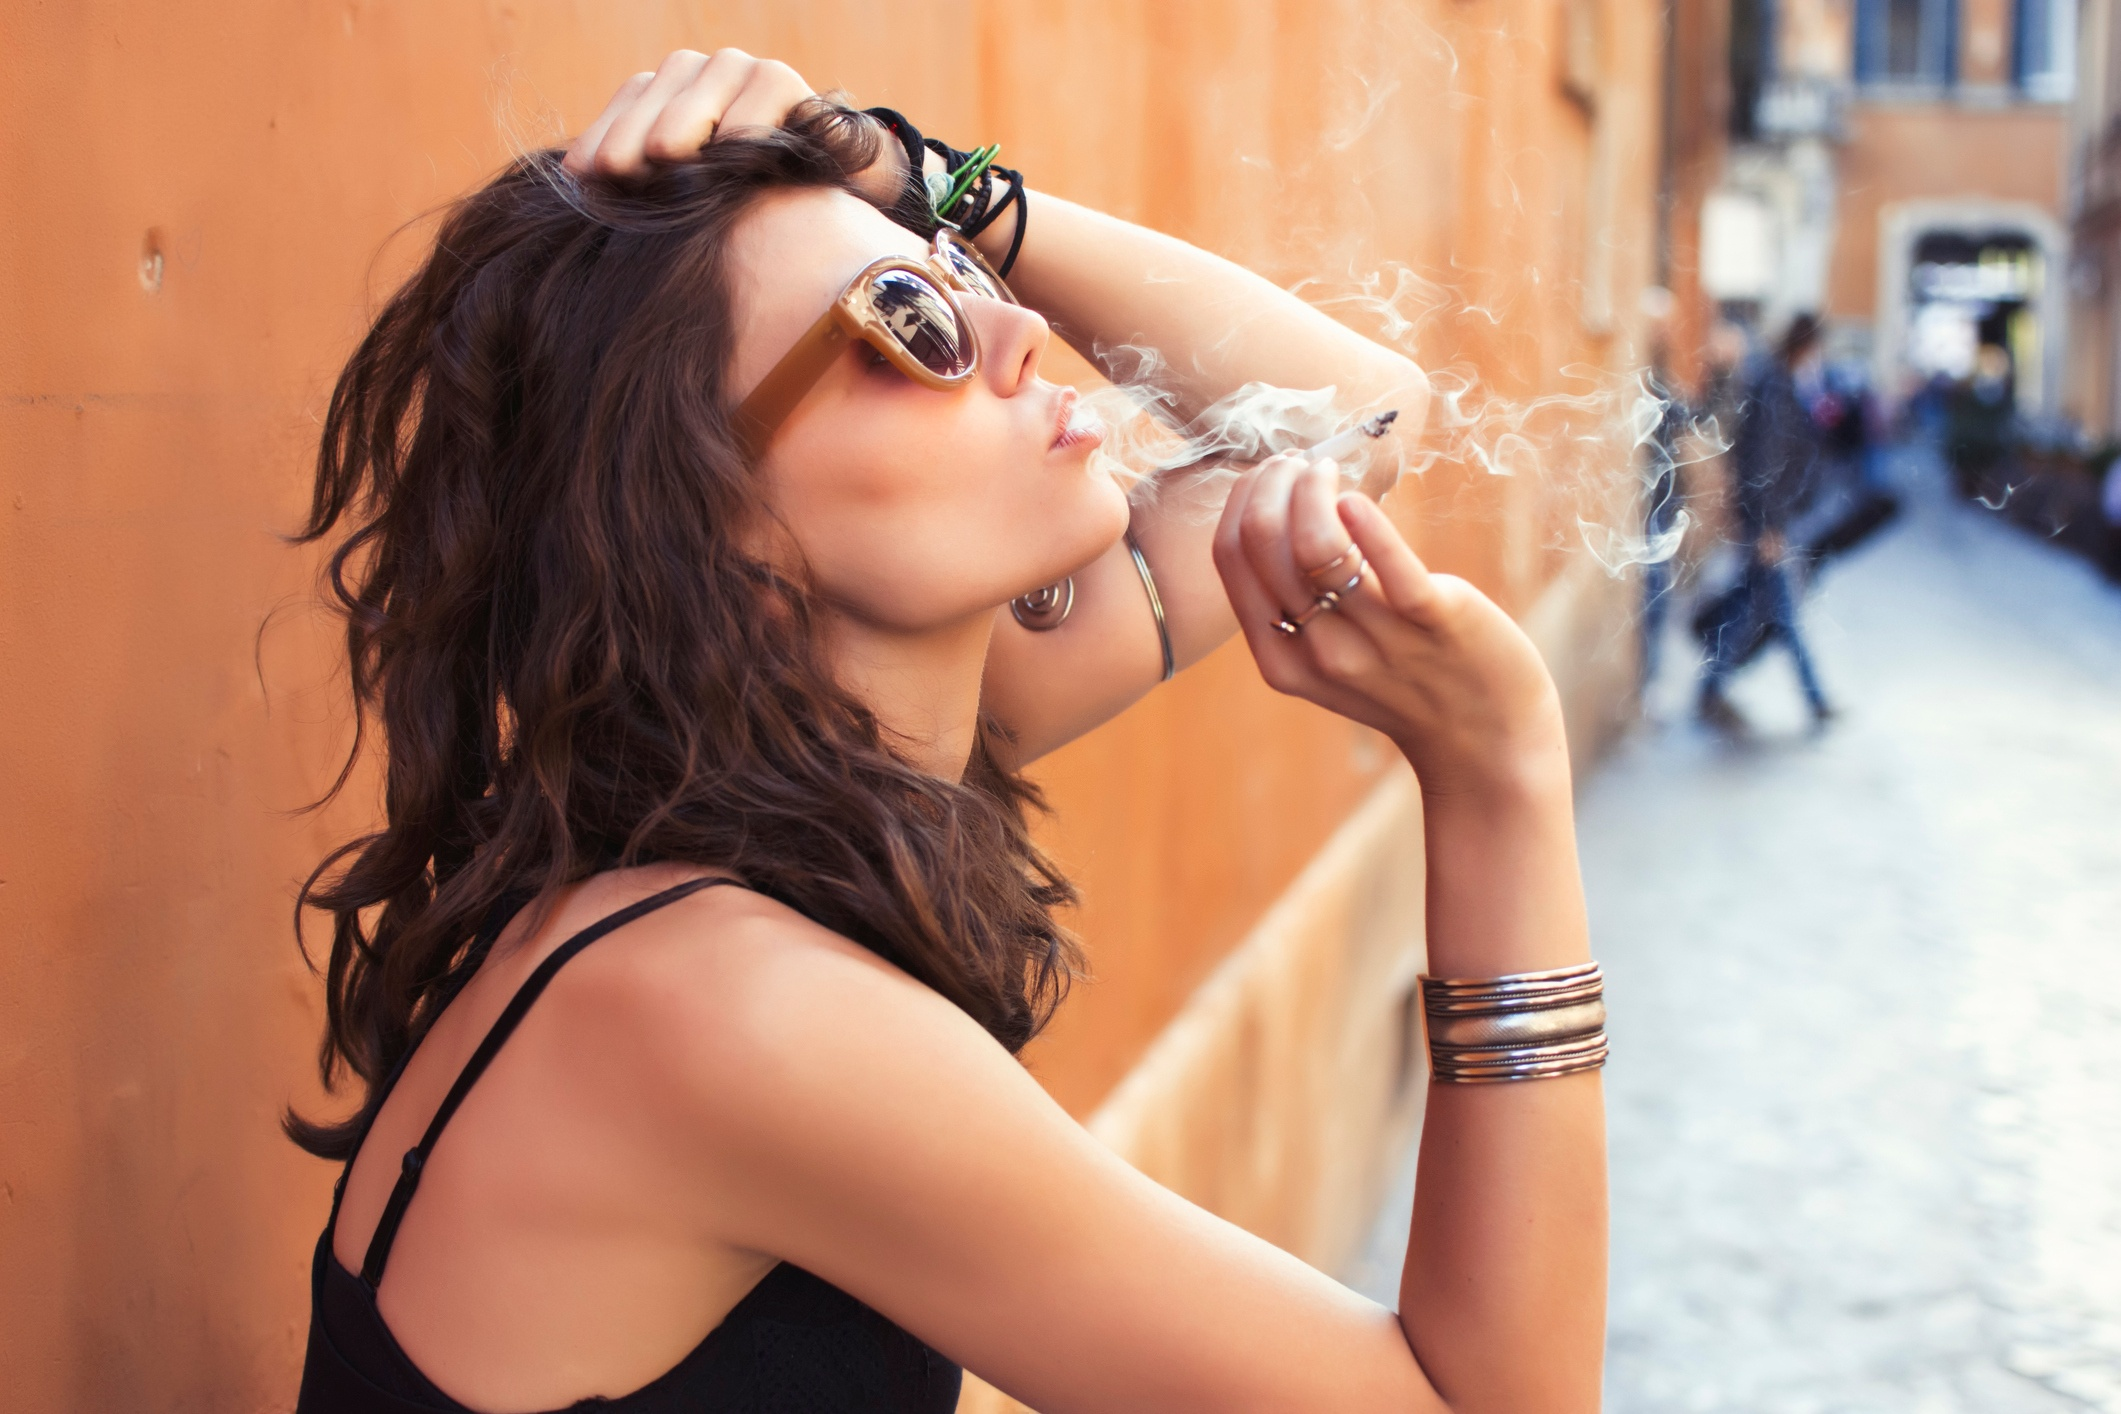 Woman smoking- JConnelly blog-Big Tobacco is Lighting it Up on Social Media and You Can Too